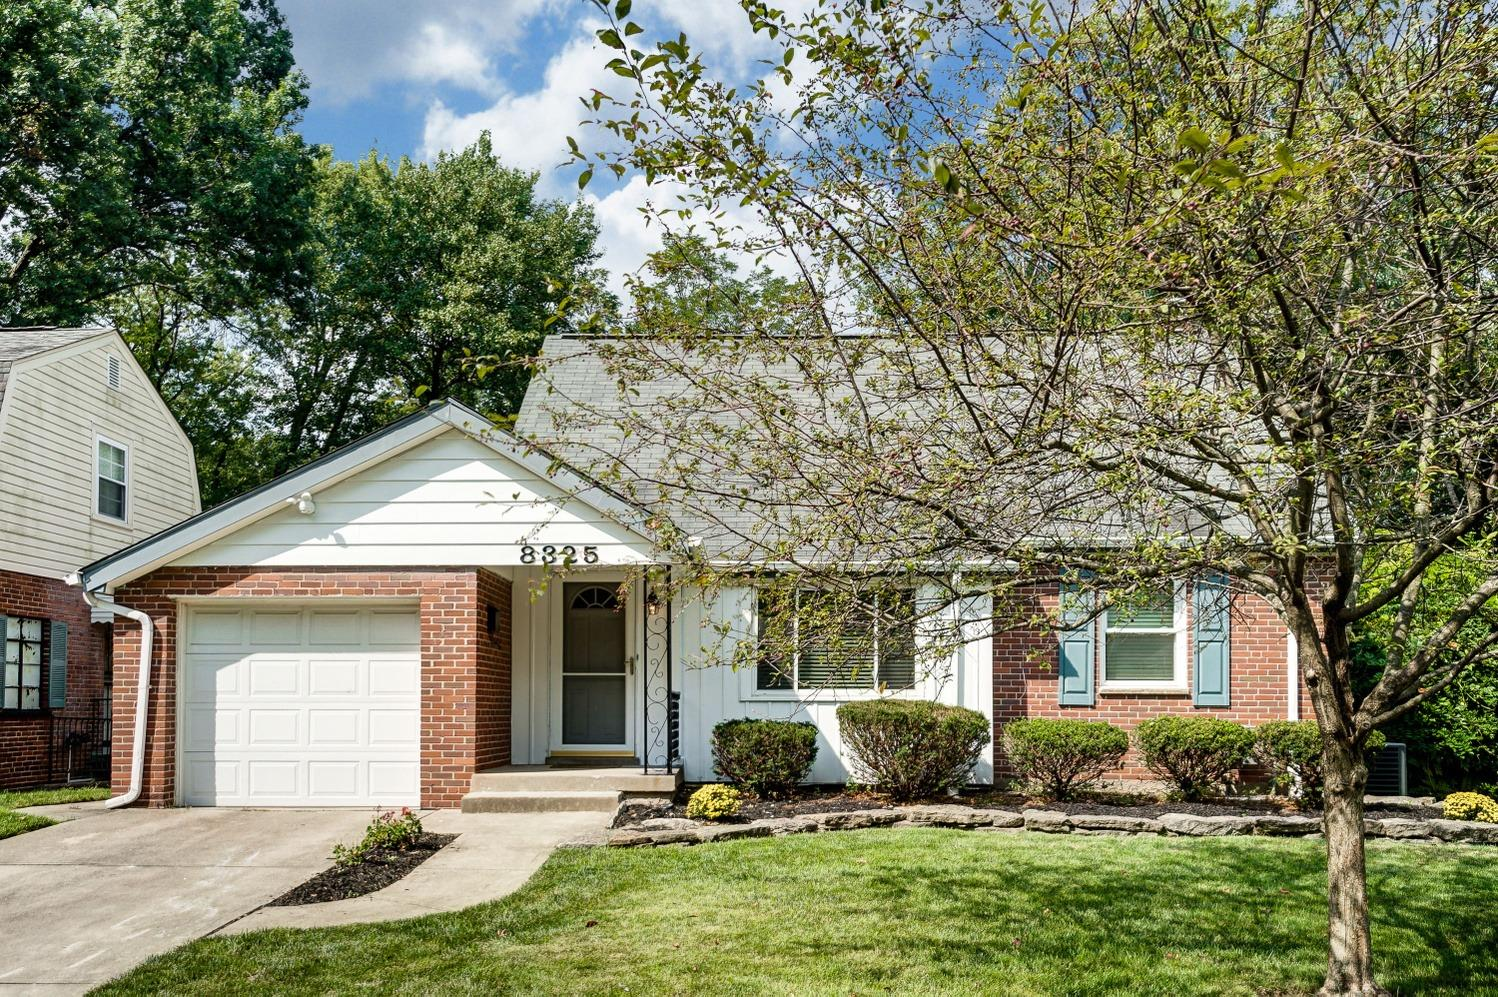 8325 Wicklow Ave Dillonvale, OH